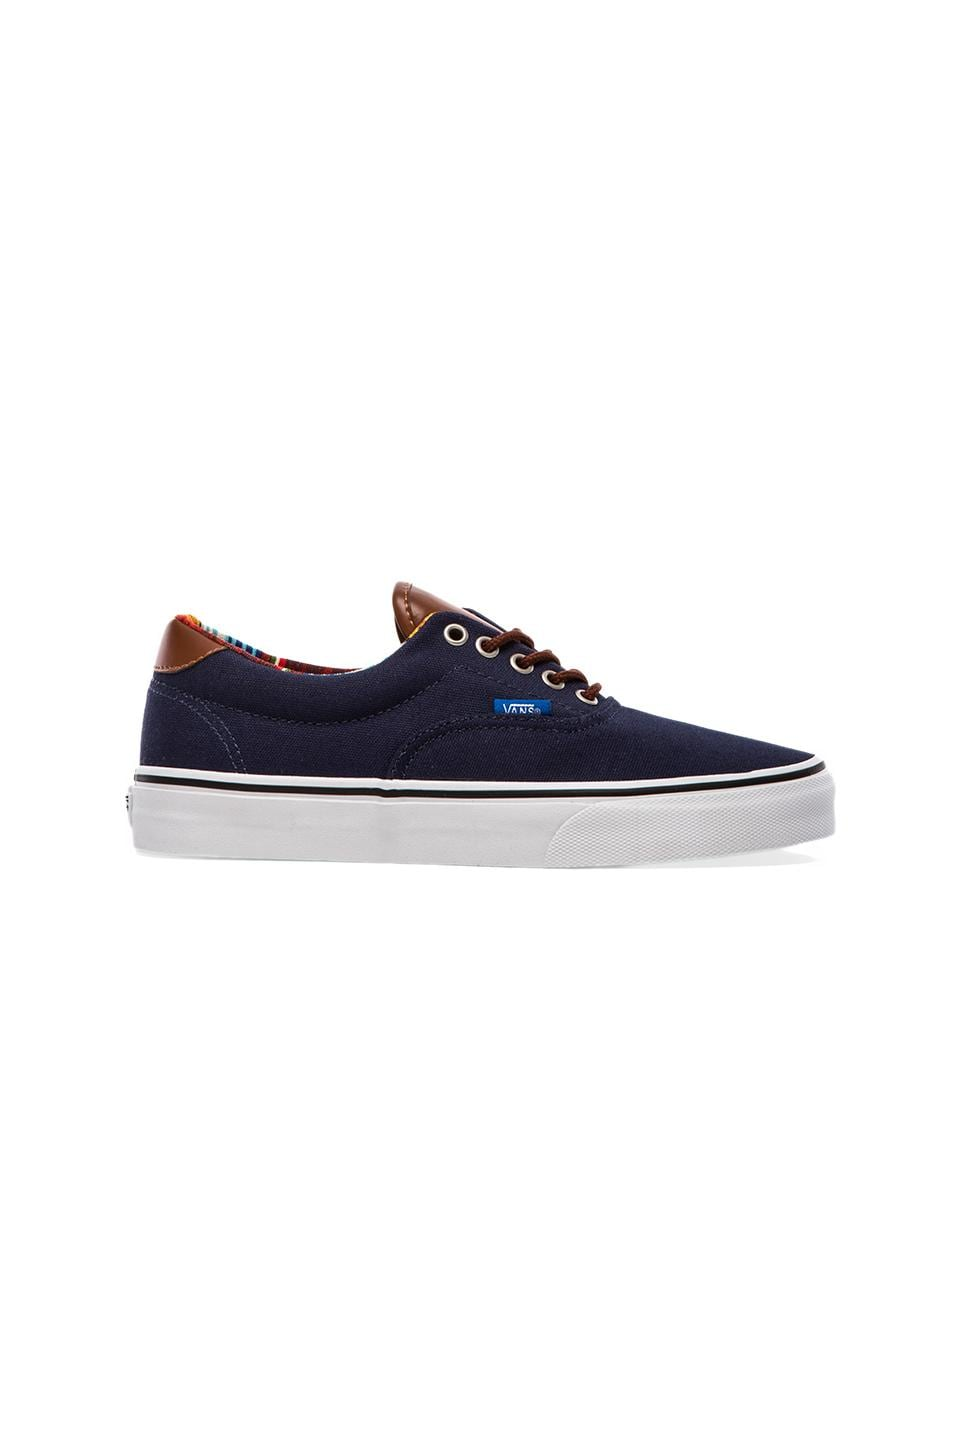 Vans Era 59 in Dress Blues & Multi Stripes